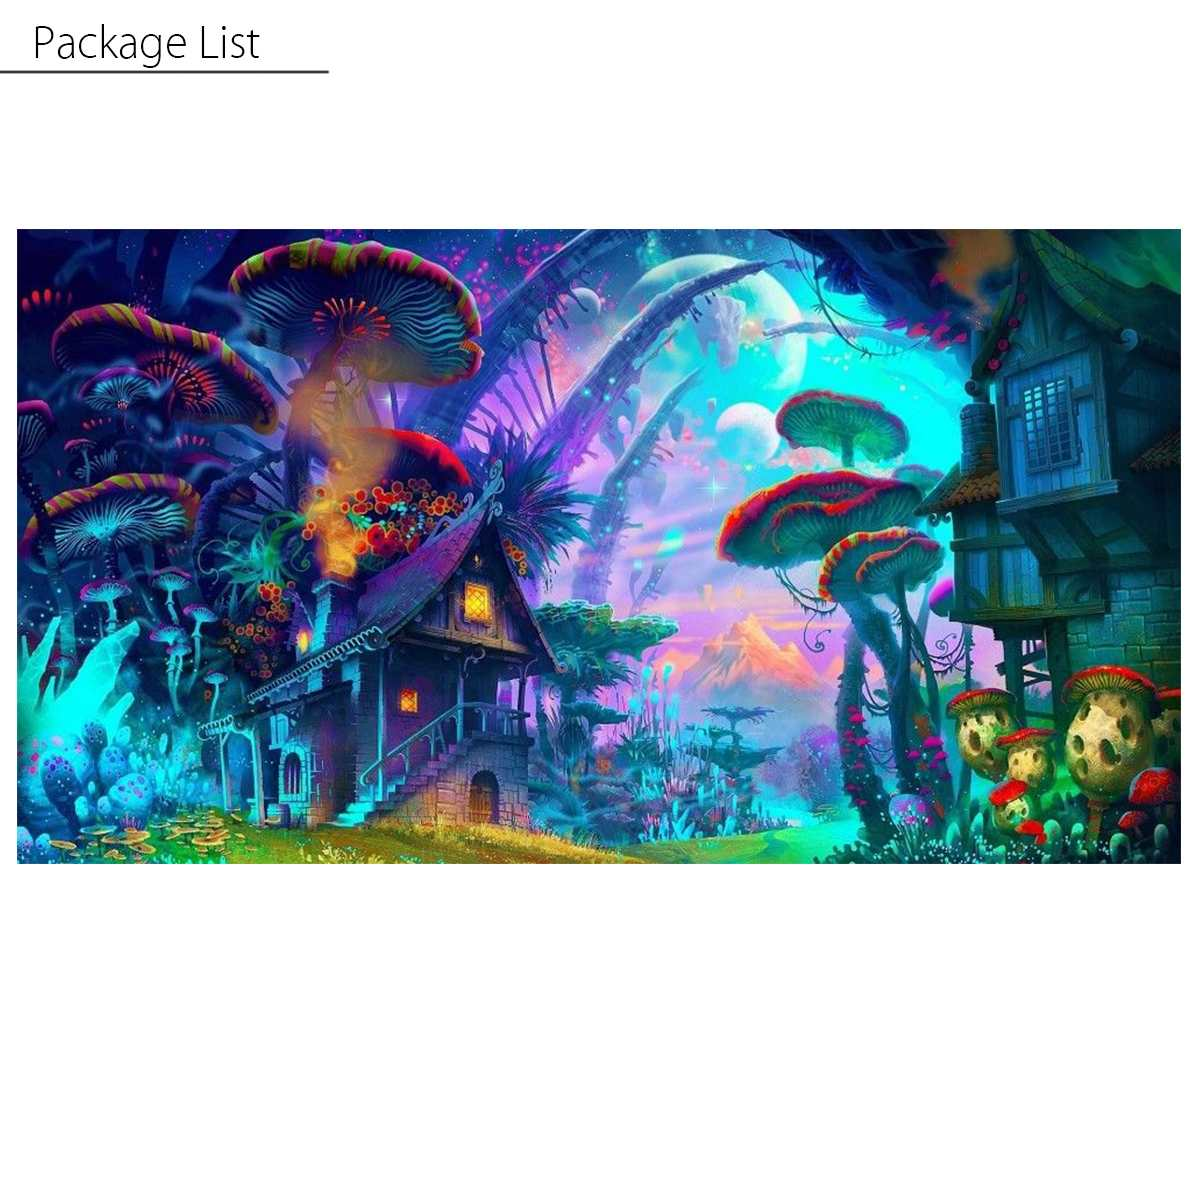 90x60cm Psychedelic Mushroom Town Poster Wall Art Pictures Painting Living Room Bedroom Wall Home Decrorations